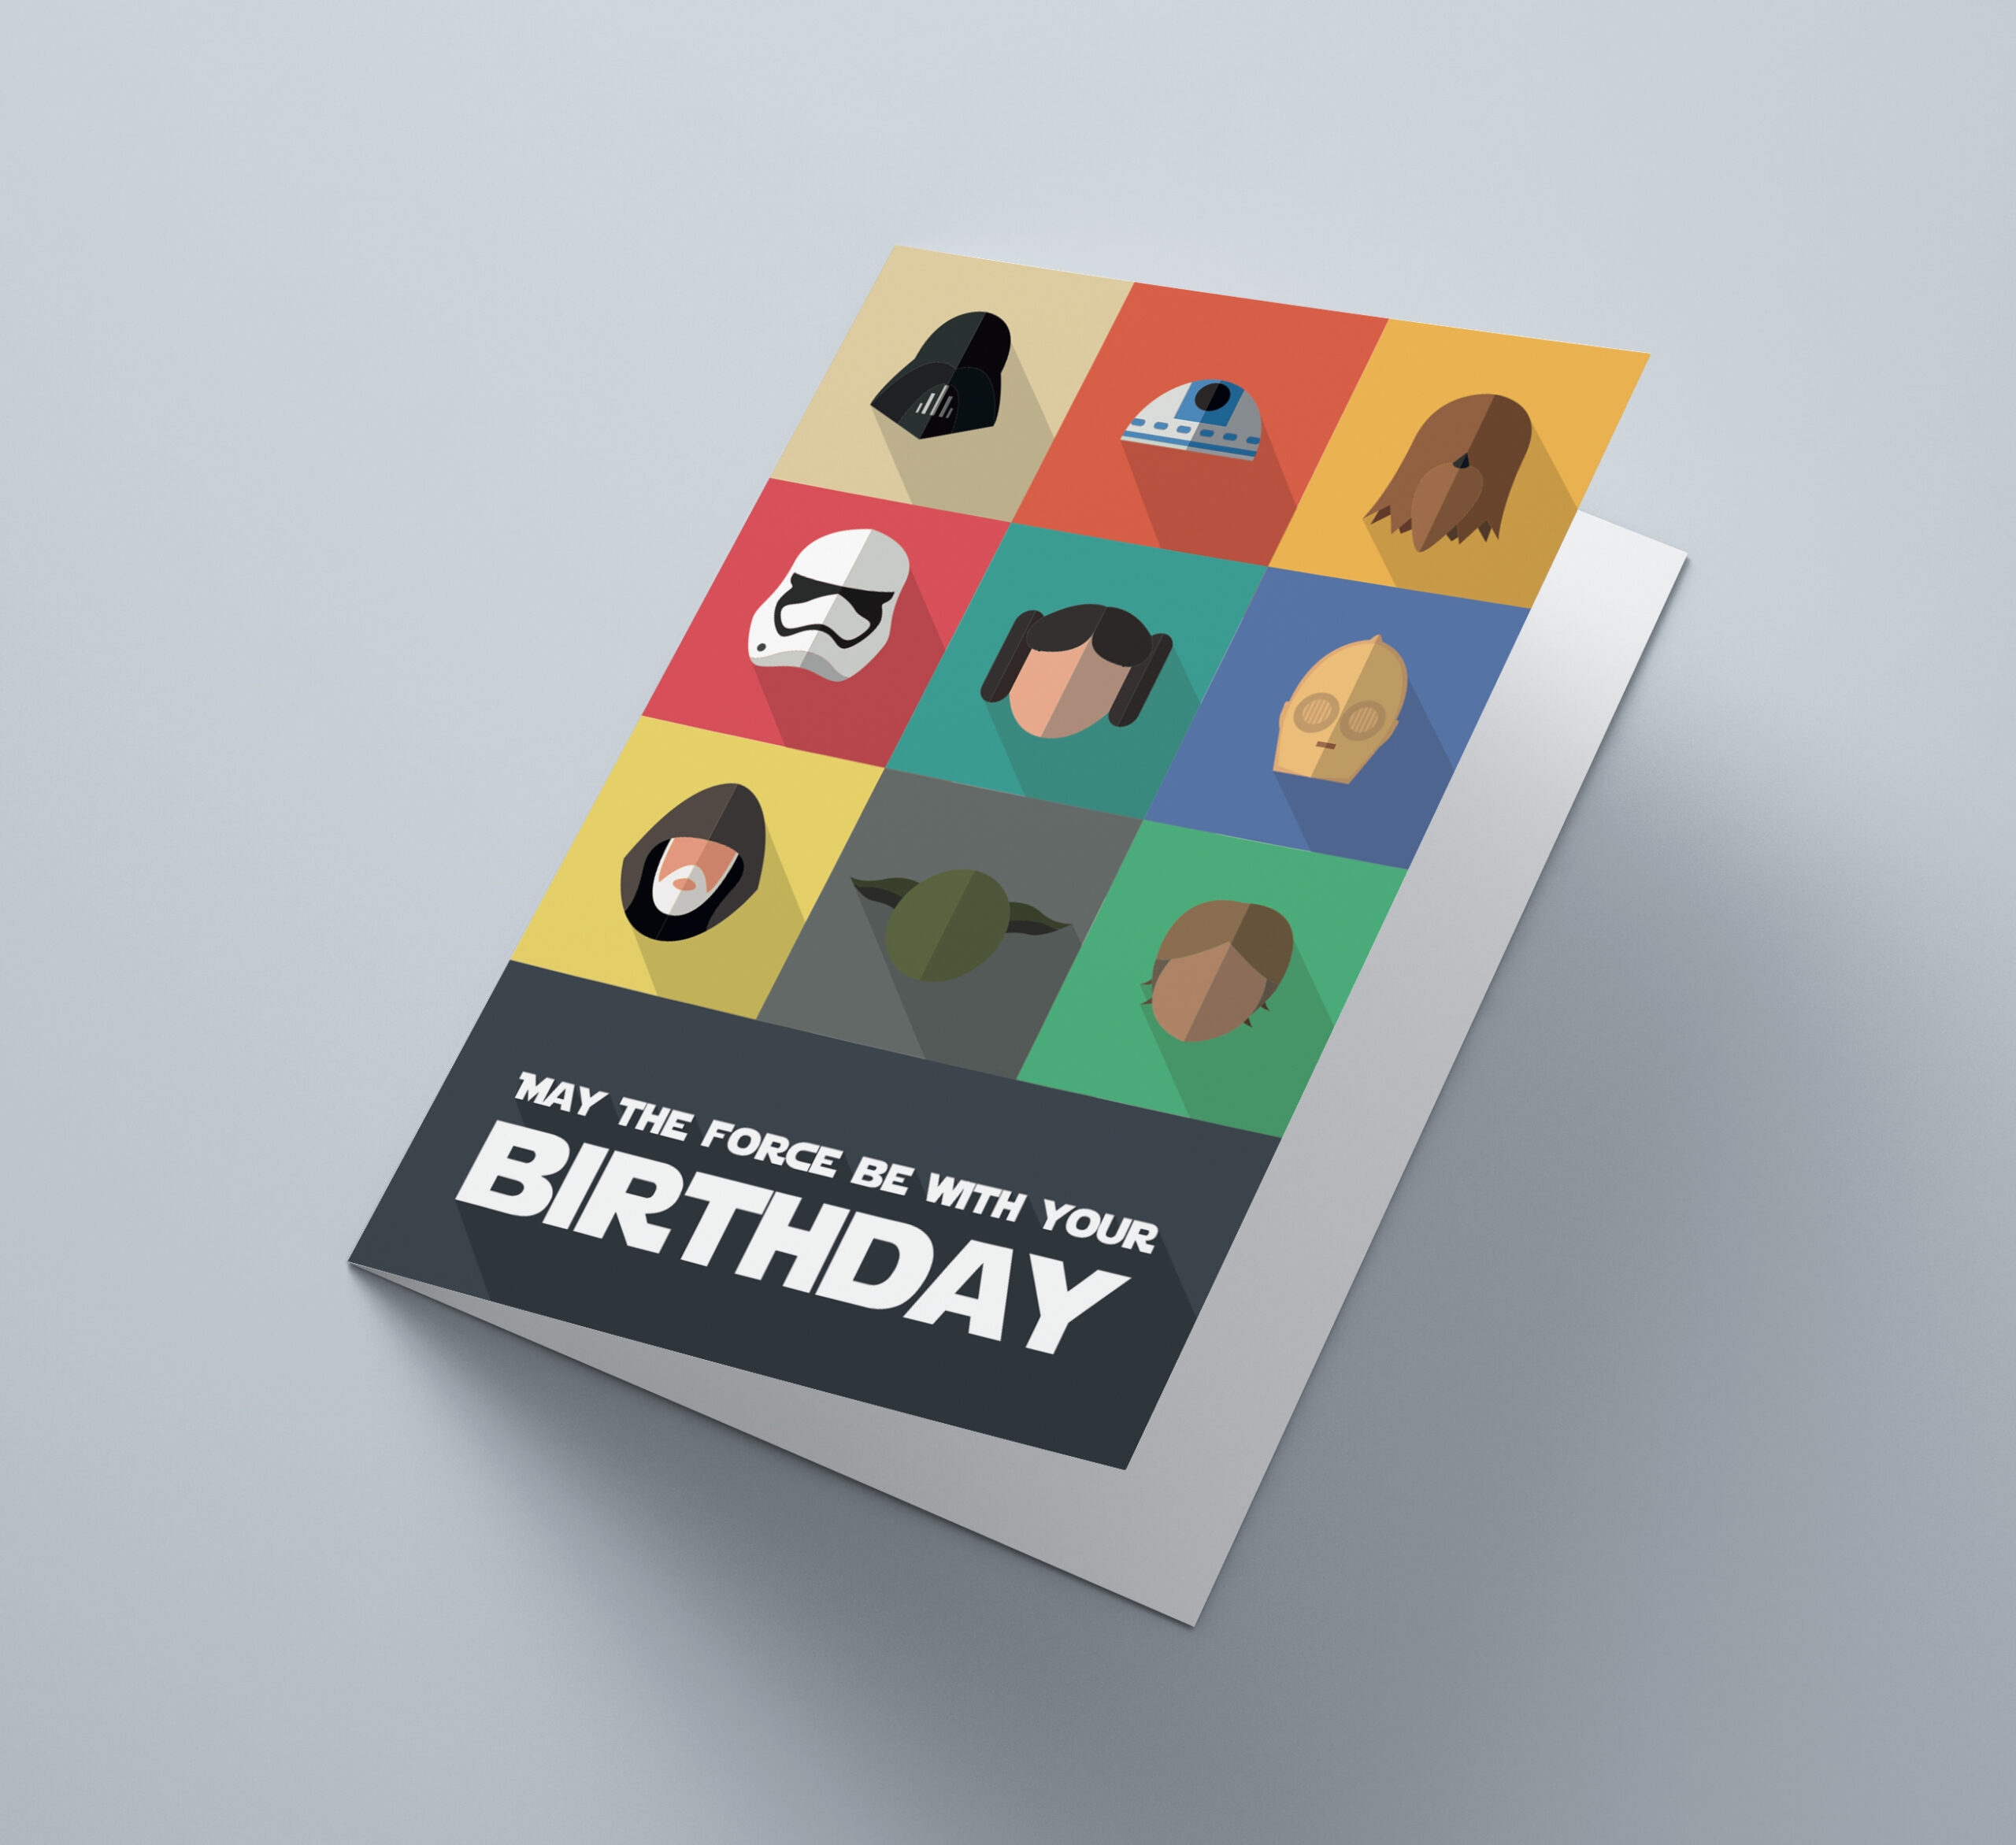 May The Force Be With Your Birthday